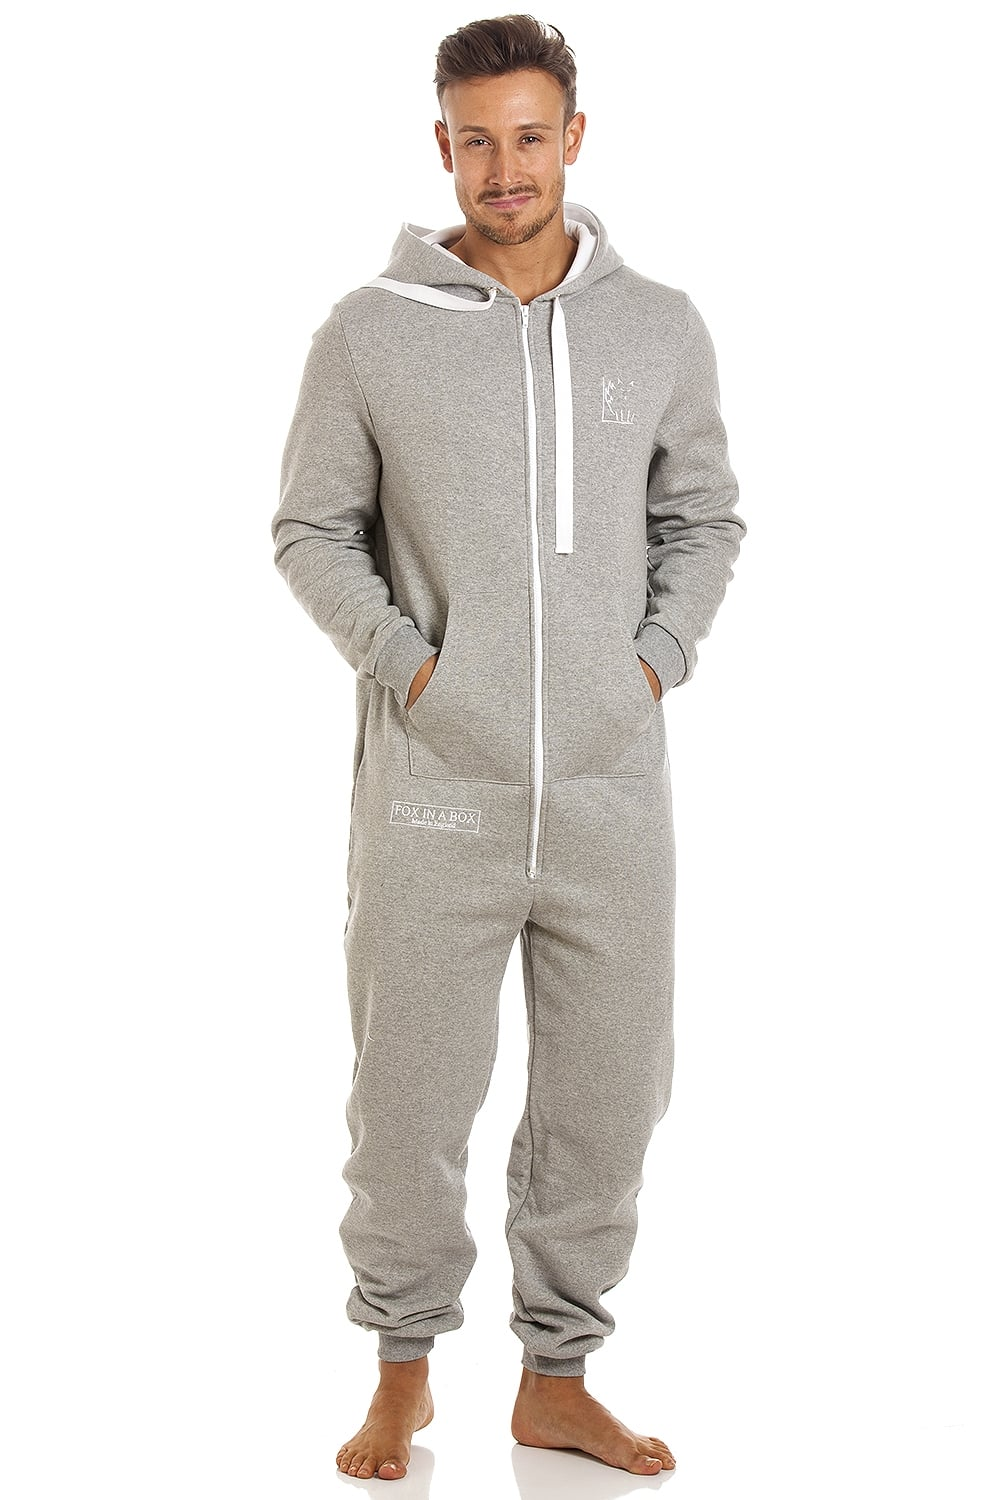 c56e6f23d633 Camille Mens Fox In A Box Unisex Grey Hooded Onesie Jumpsuit